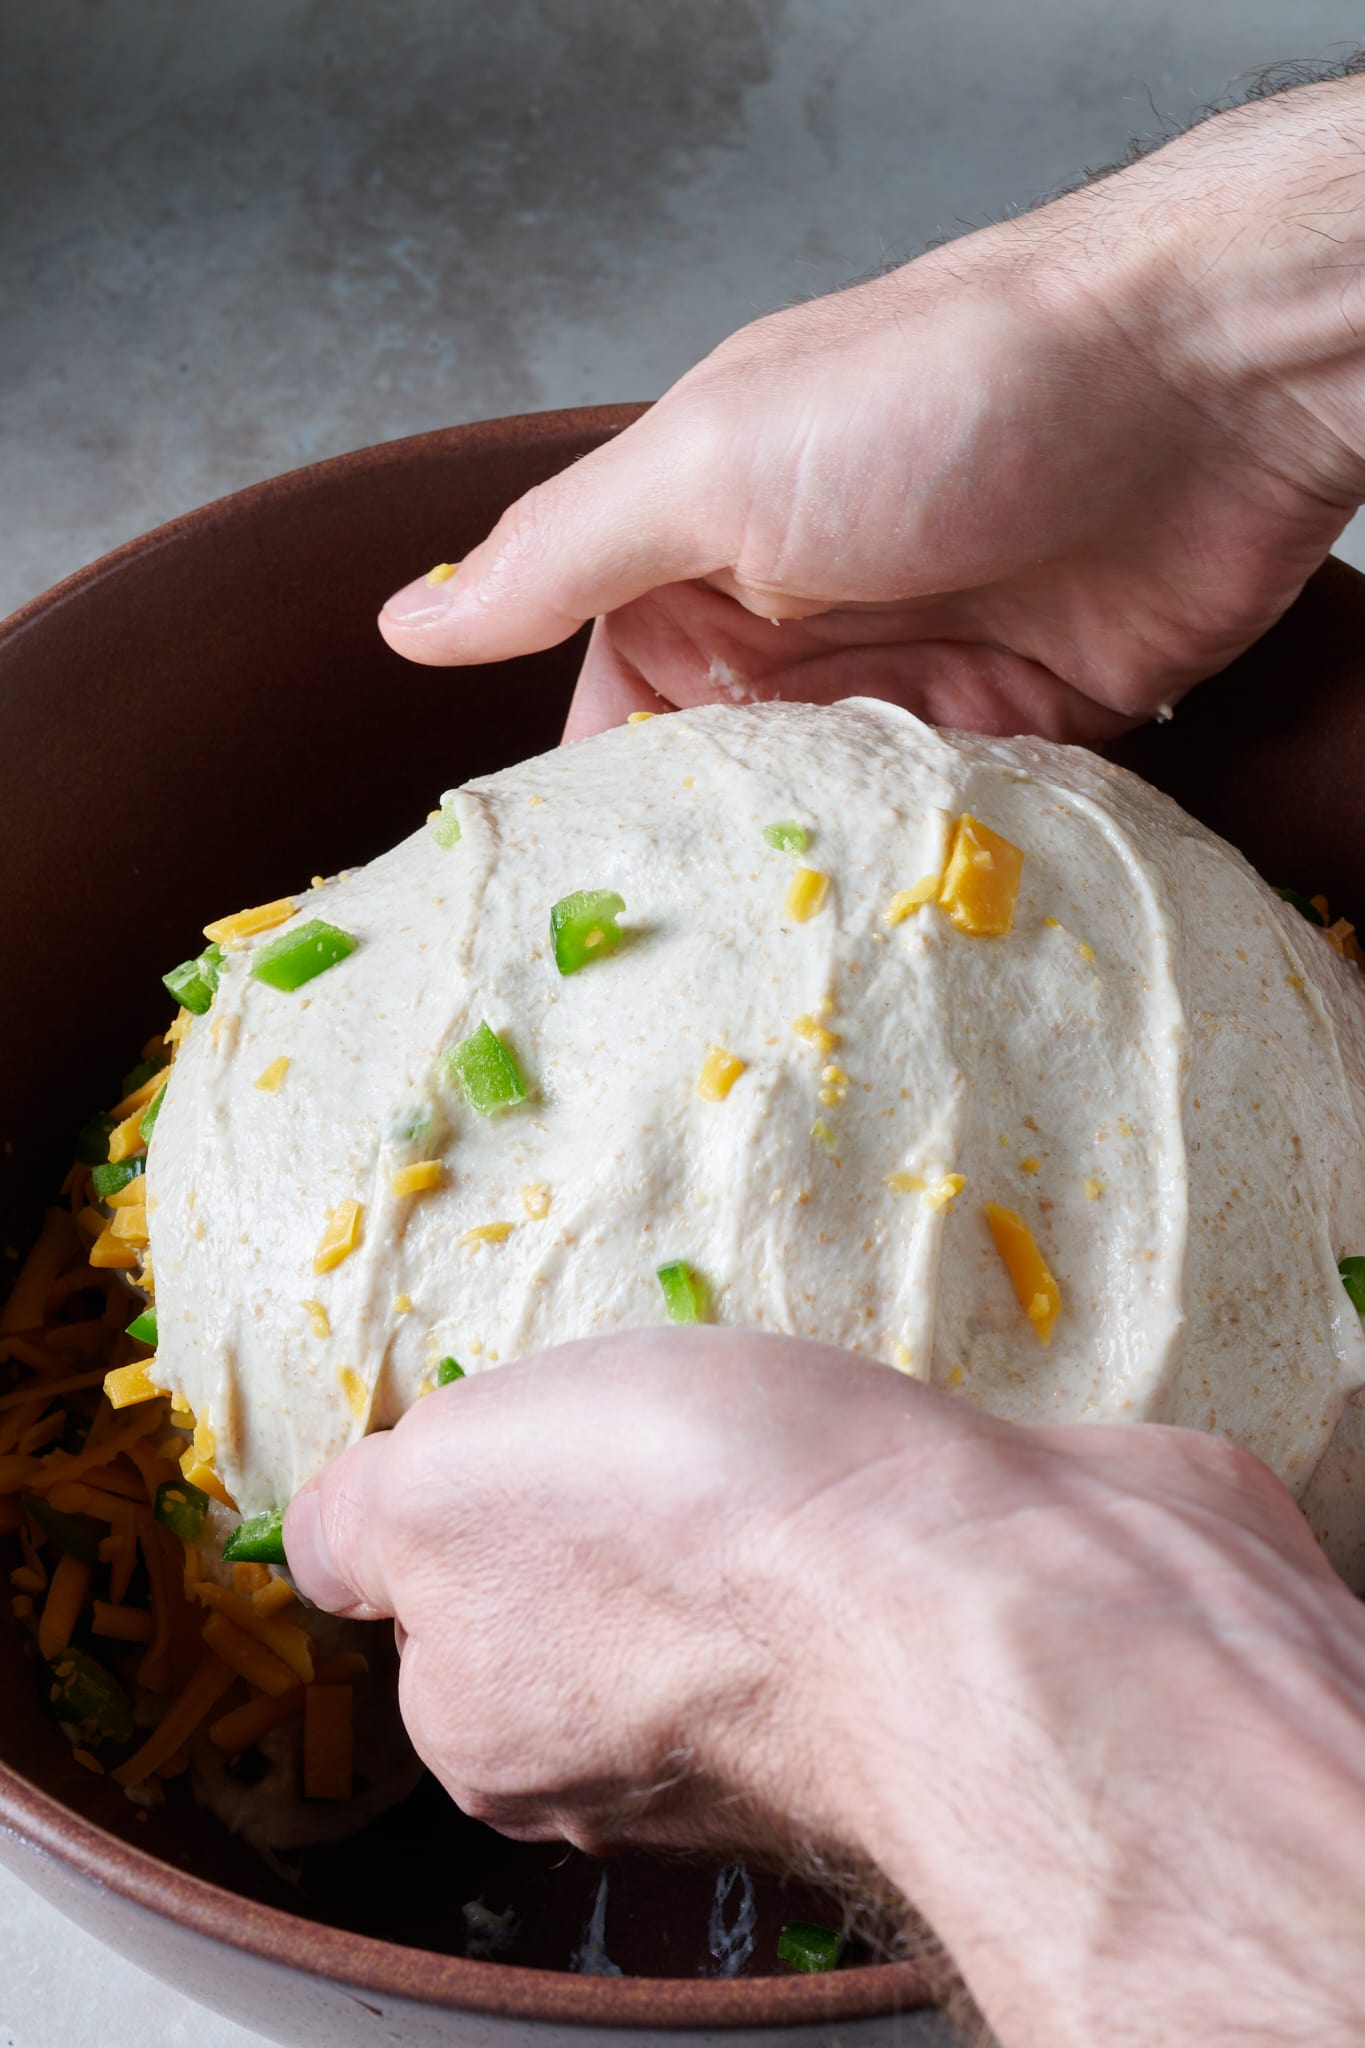 Adding jalapeño and cheddar cheese to dough during bulk fermentation